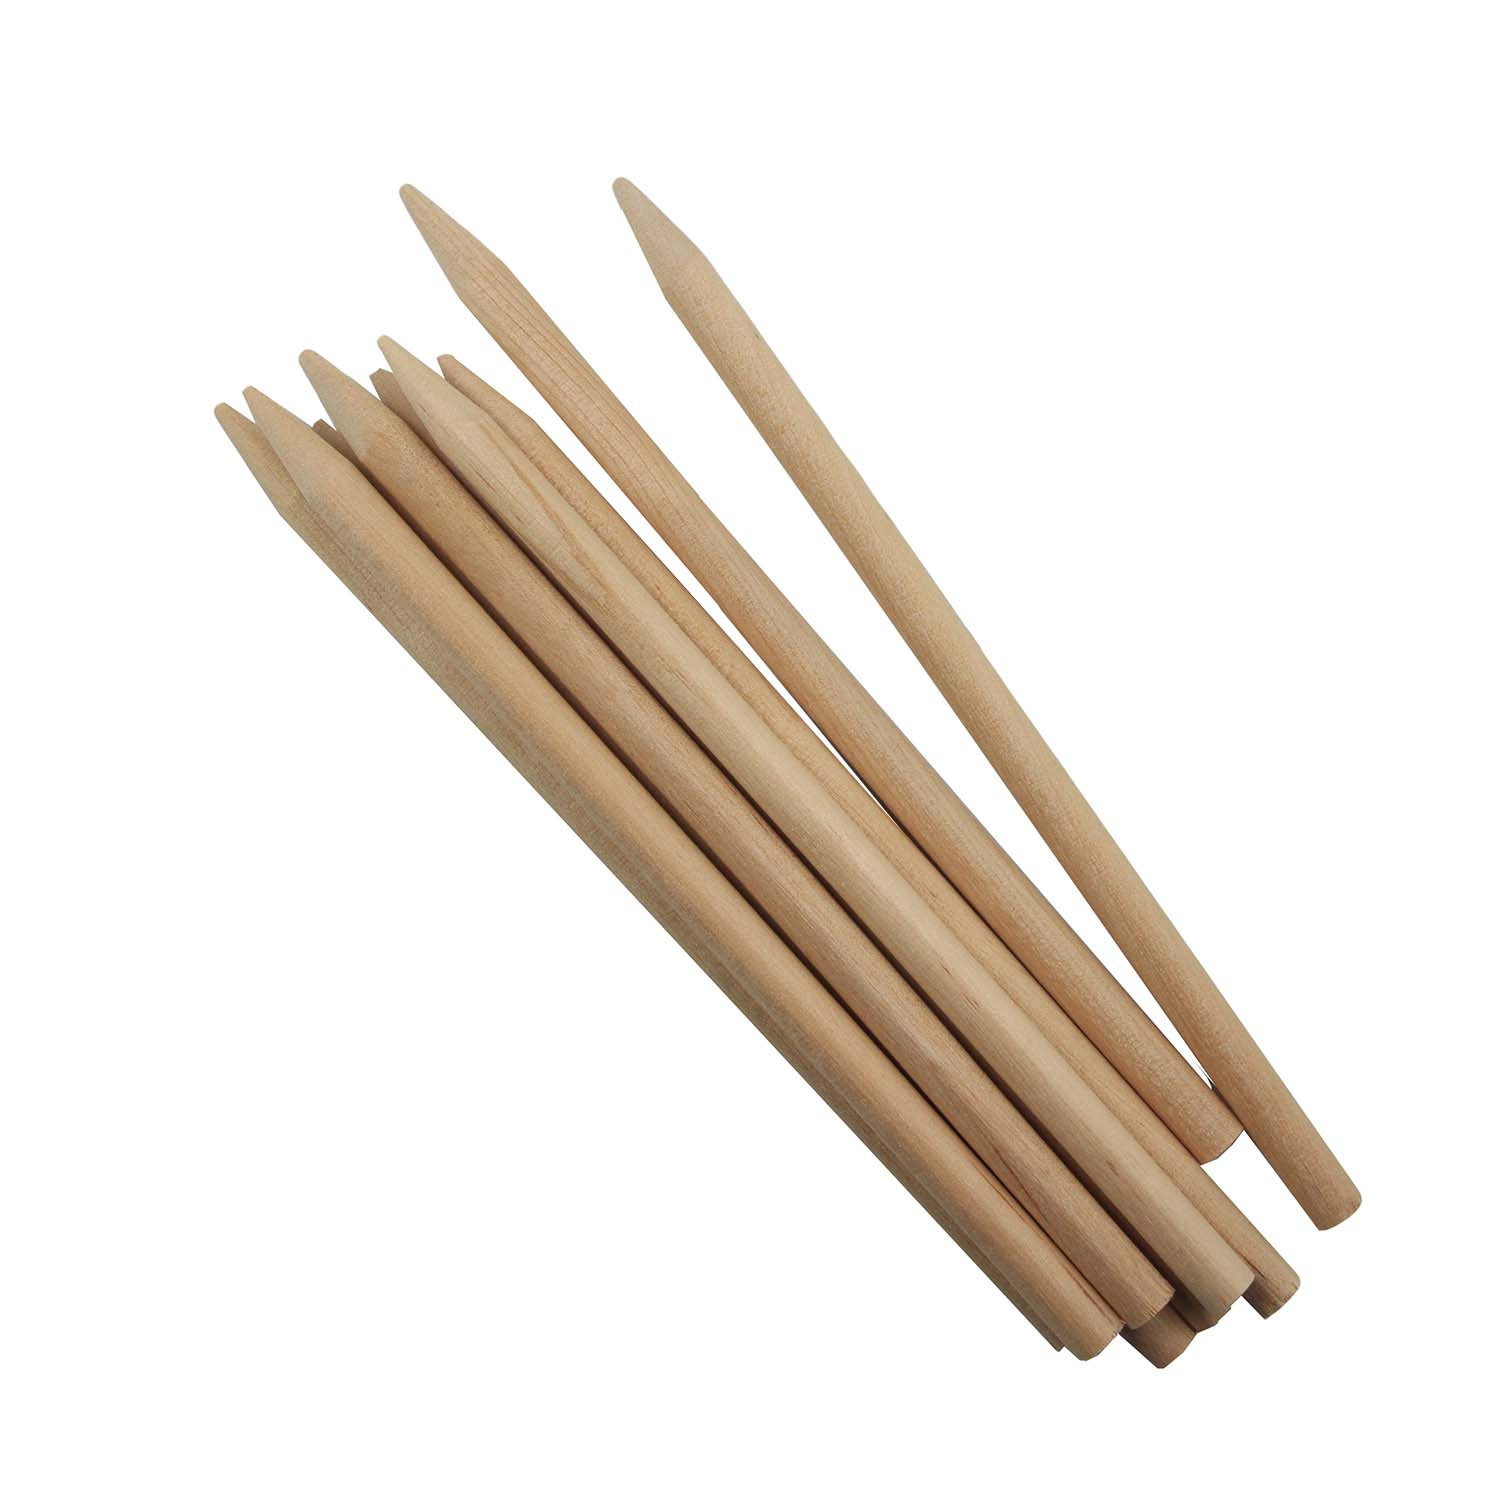 Wooden Candy Apple Sticks 5 1/2